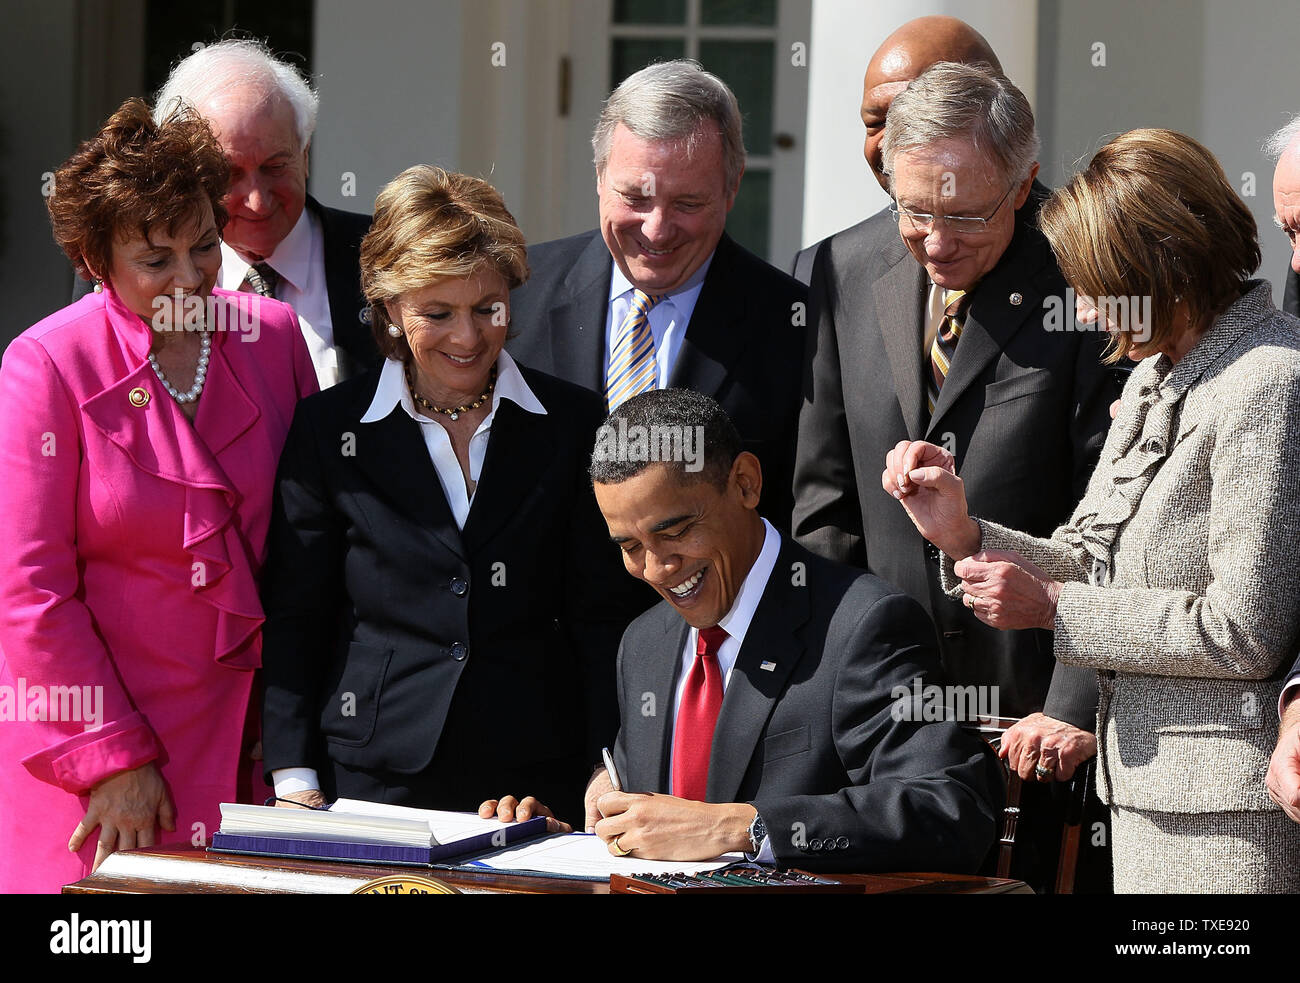 WASHINGTON - MARCH 18: Surrounded by members of Congress, U.S. President Barack Obama signs the Hire Act during a ceremony in the Rose Garden at the White House on March 18, 2010 in Washington, DC. The HIRE Act will offer a payroll tax break for businesses that hire unemployed workers and will offer businesses an income tax credit of $1,000 for retaining these employees.  (Photo by Mark Wilson/Getty Images) - Stock Image